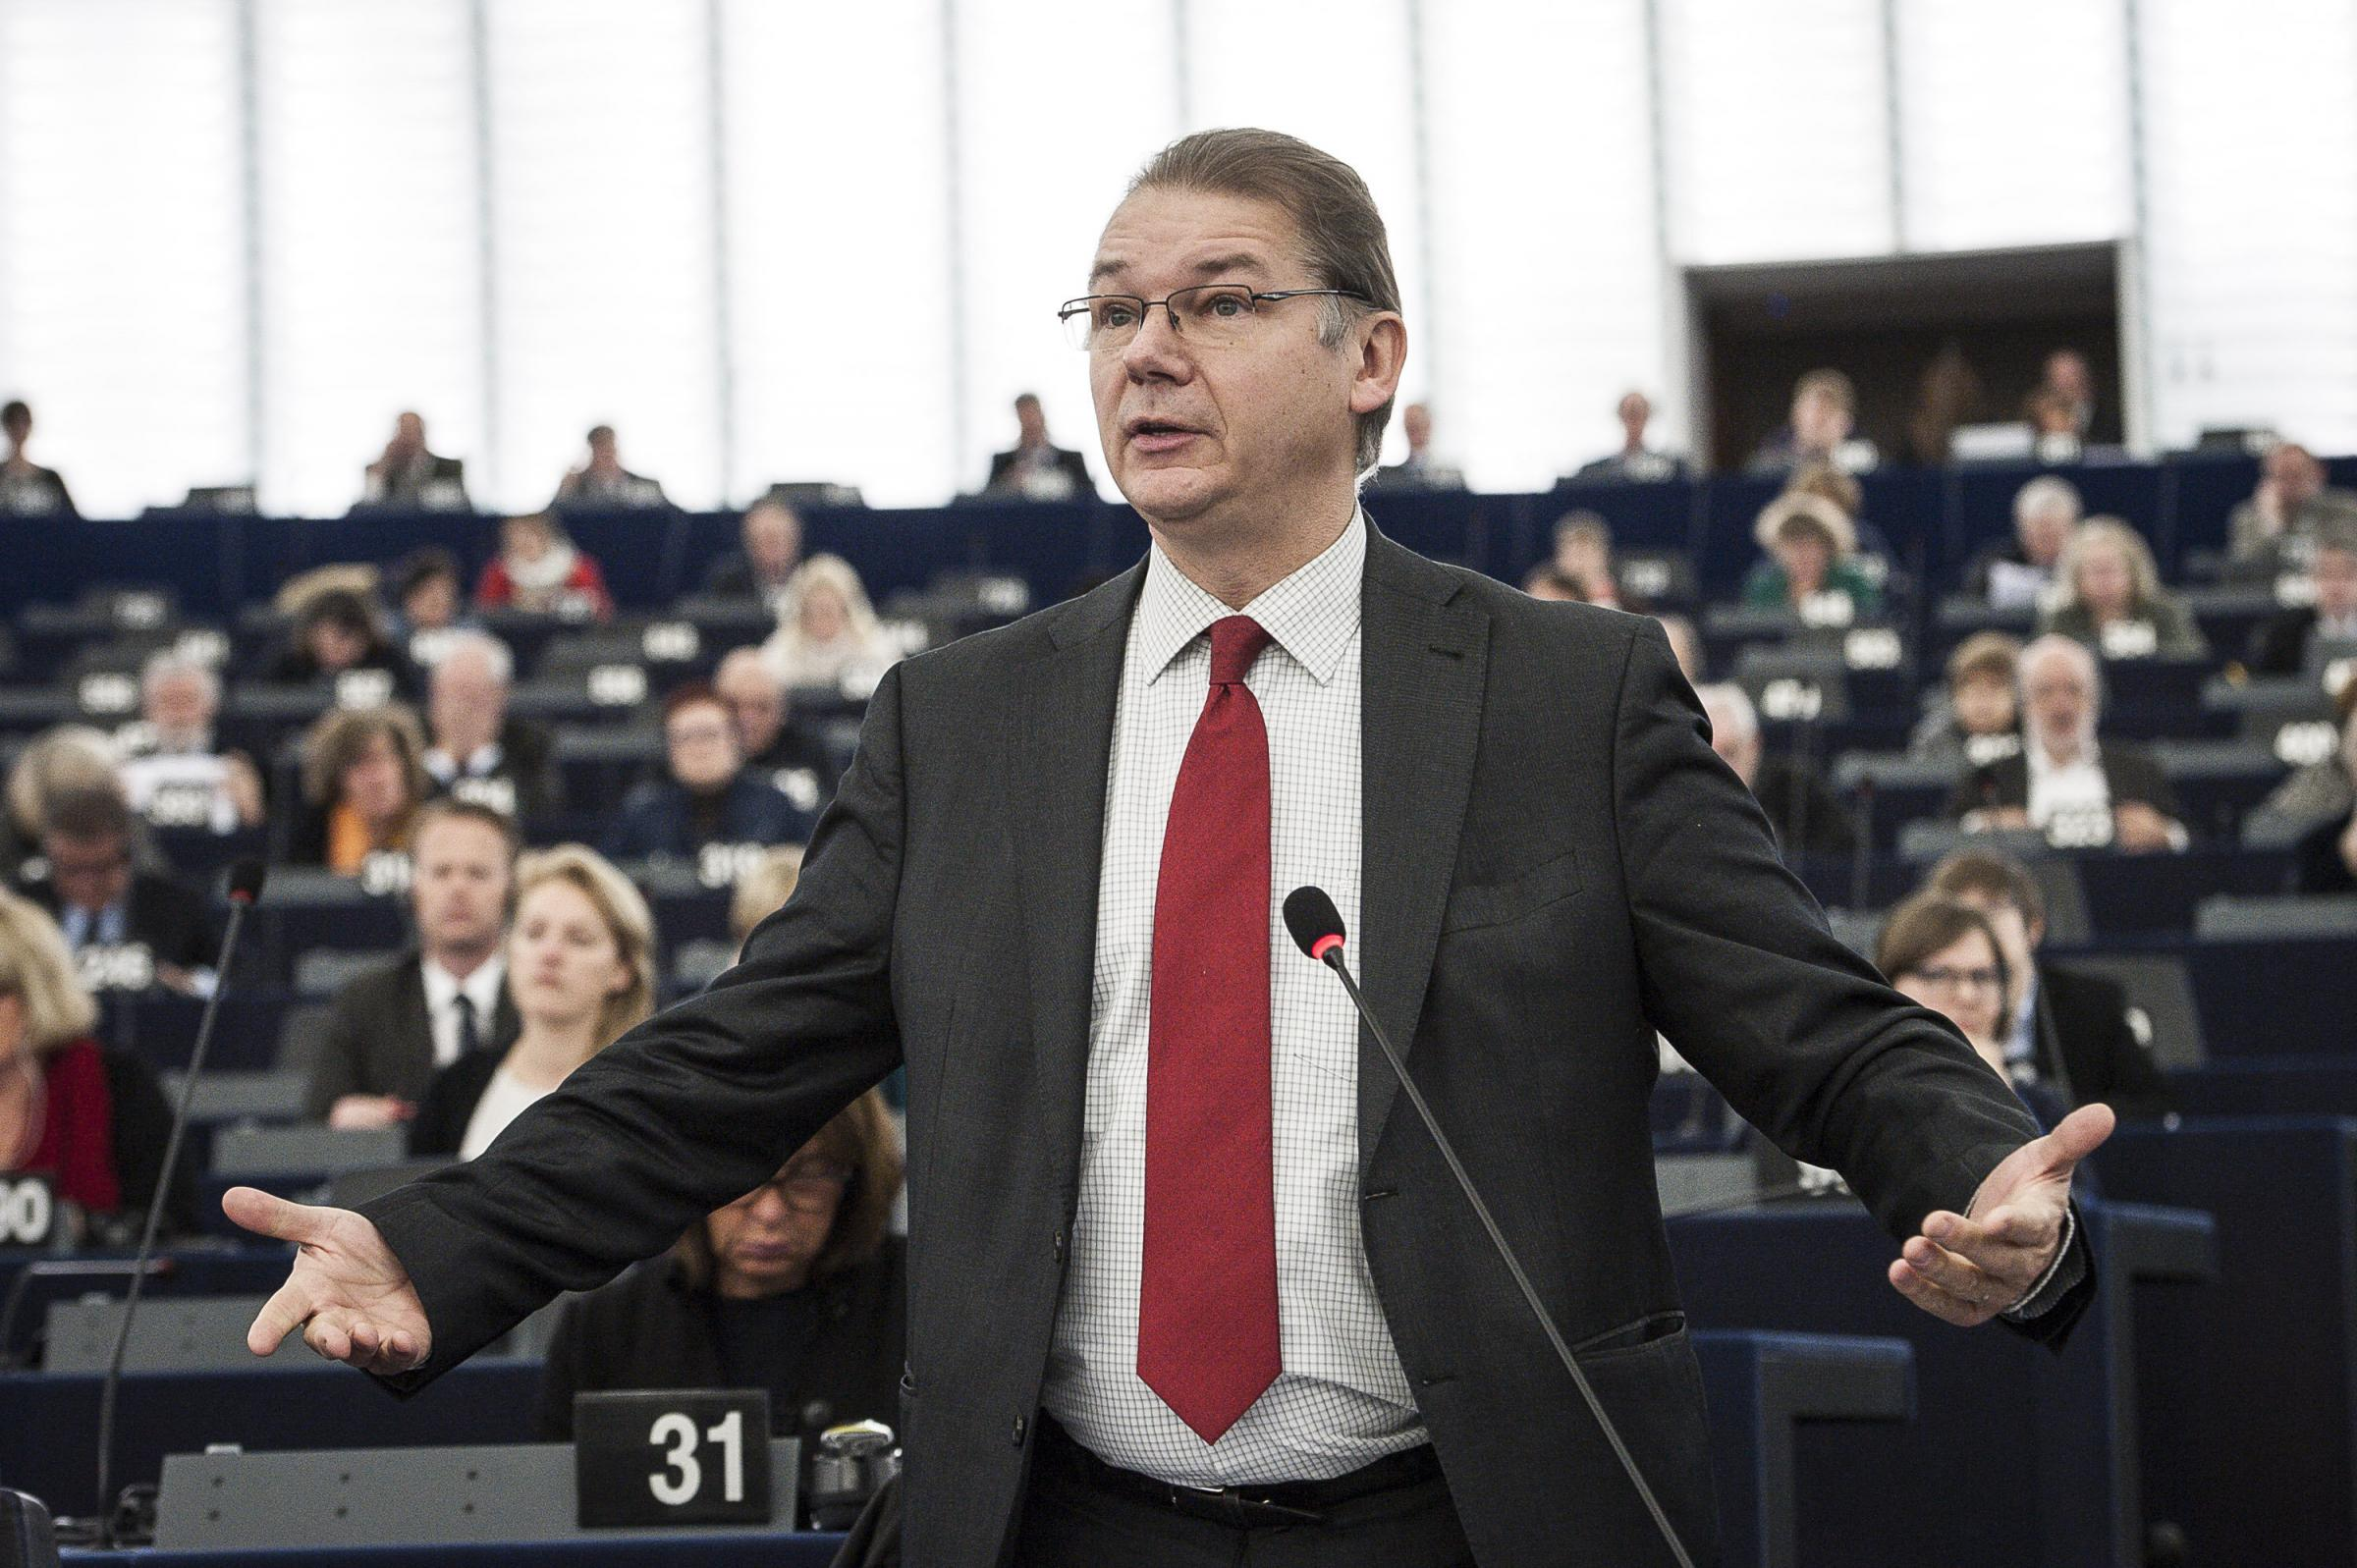 Philippe Lamberts said the UK must solve the issues it has created